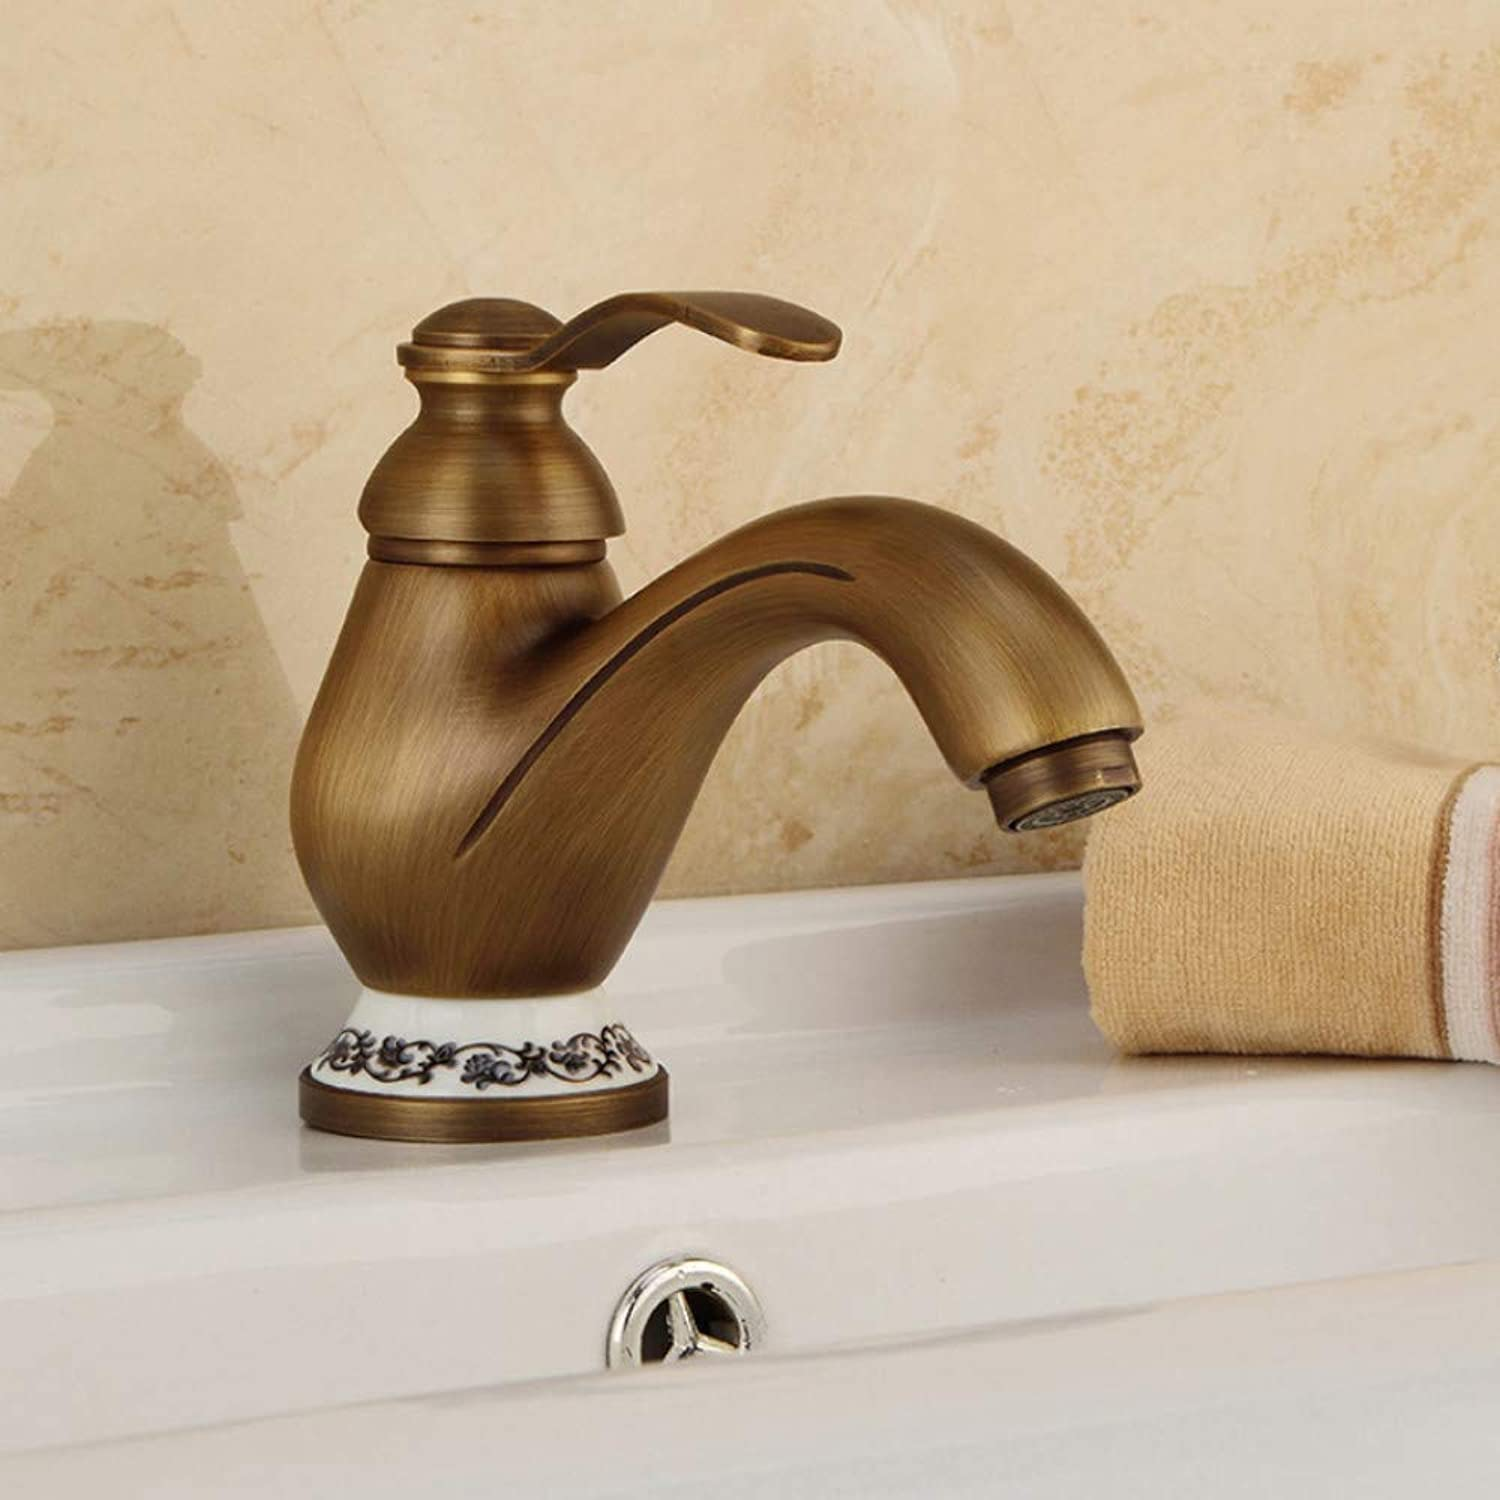 Ayhuir Basin Faucets Antique Brass Deck Mounted Bathroom Sink Faucet Single Handle Hole Ceramic Deco Toilet Mixer Tap Wc Taps